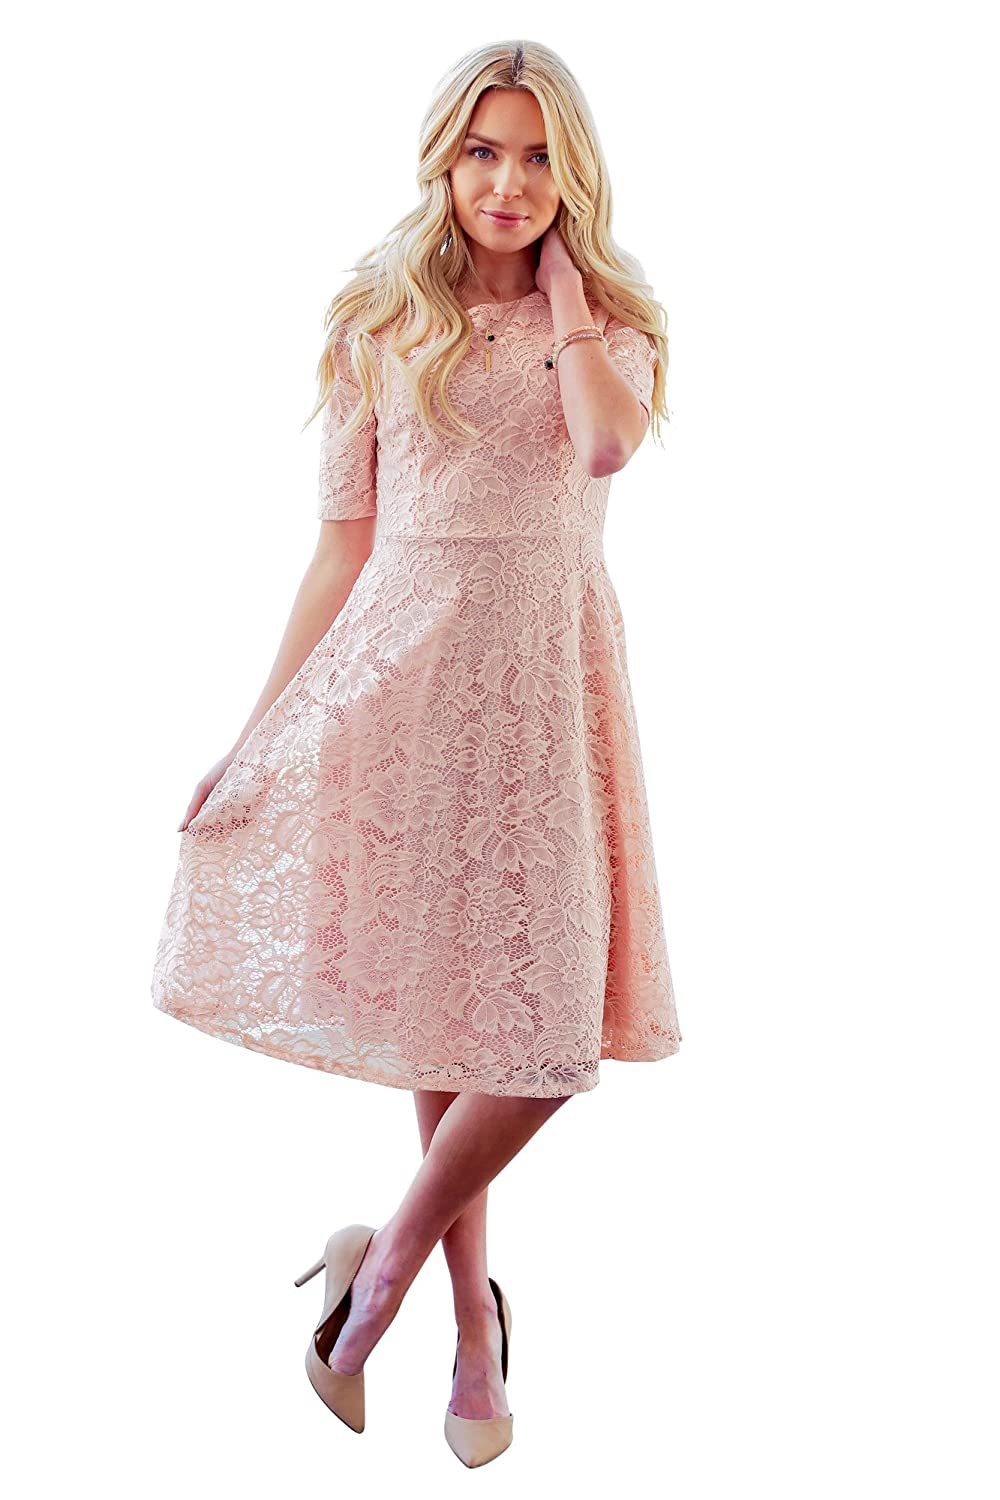 845831ee58d3f Gorgeous full-lace Modest Dress is stunning & unique! Perfect for wearing  to church, a semi-formal dance, holiday parties or as a Modest Bridesmaid  Dress!